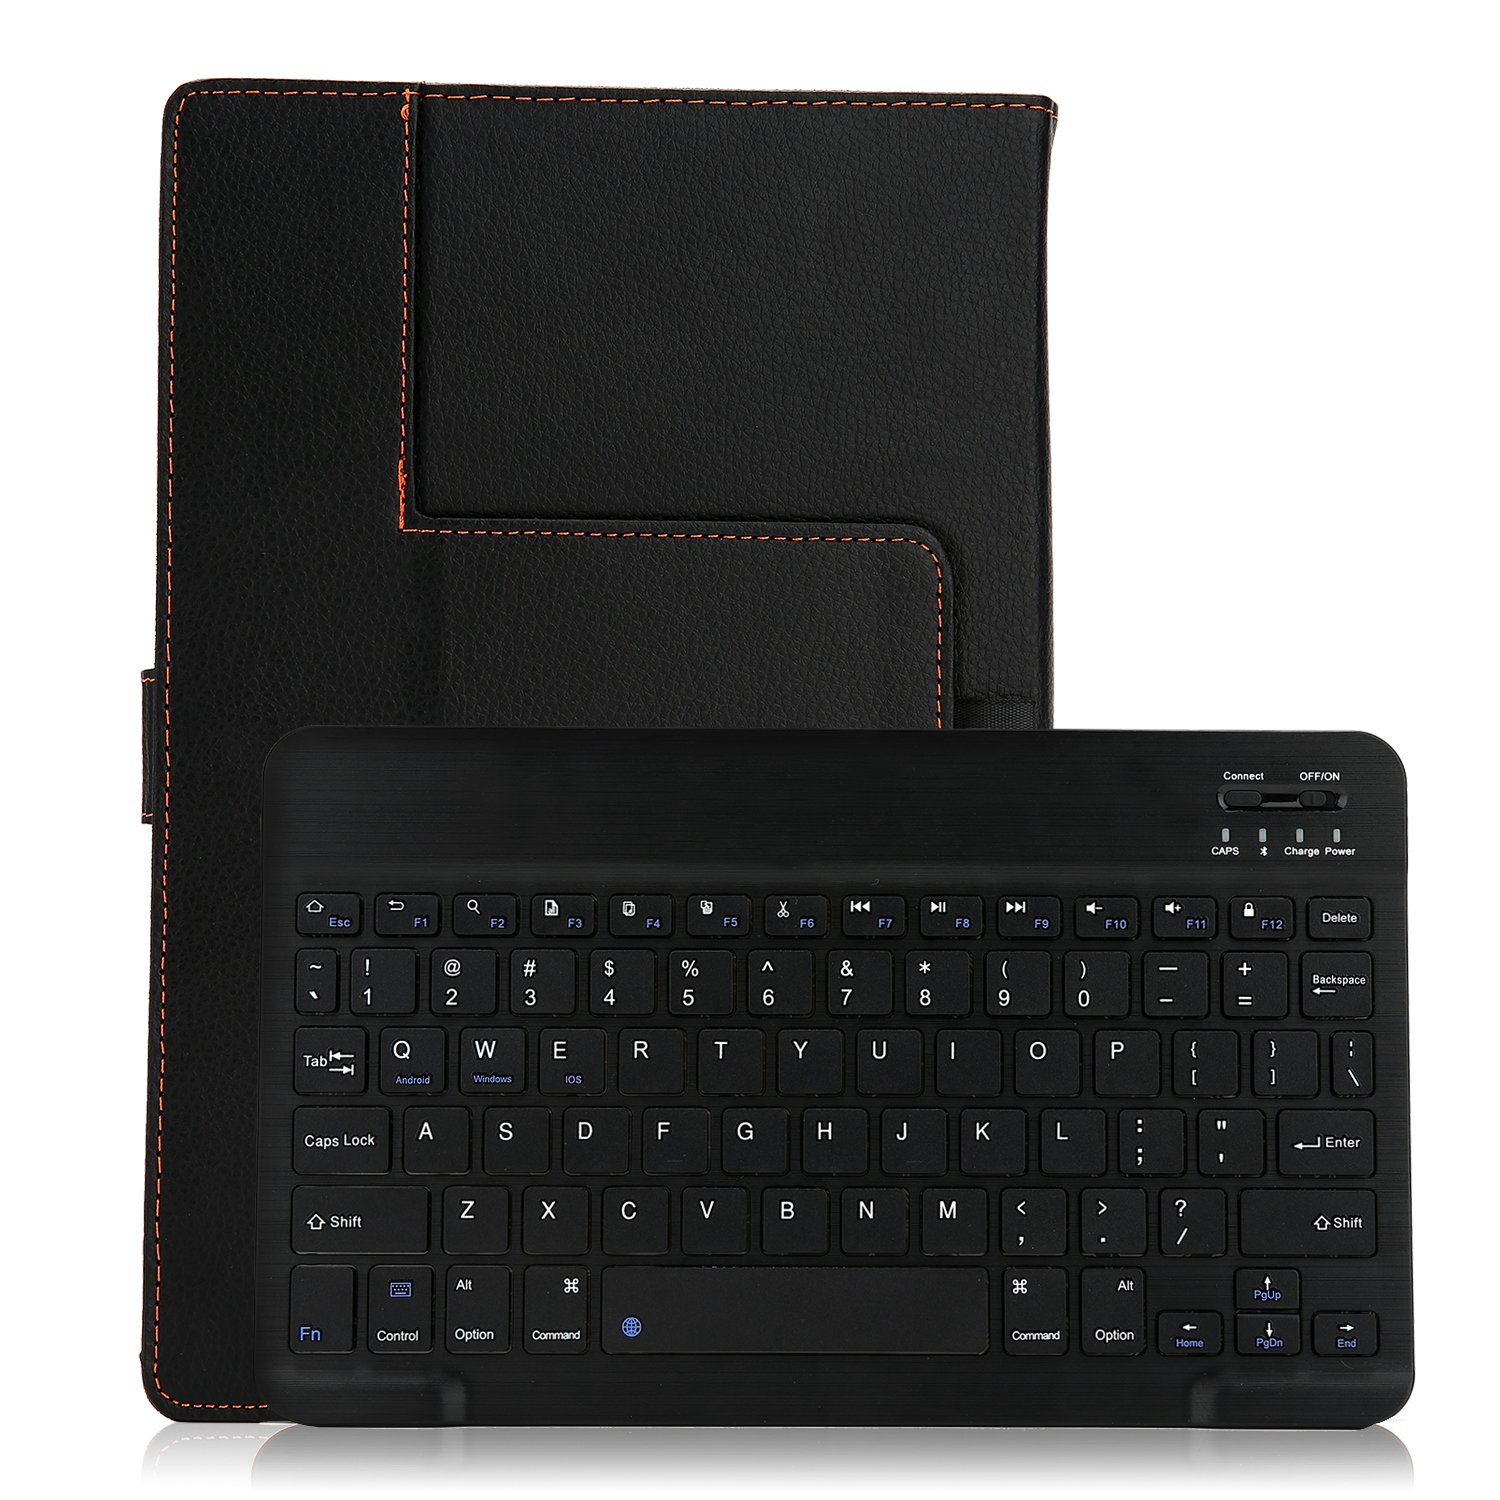 Vacio PU Leather Smart Case Stand Folio Cover with Detachable Wireless Bluetooth Keyboard 9-10.1 inch Android Microsoft for Xiaomi Huawei Apple Samsung Lenovo ASUS LG Toshiba 9-10.1-inch Tablet PC